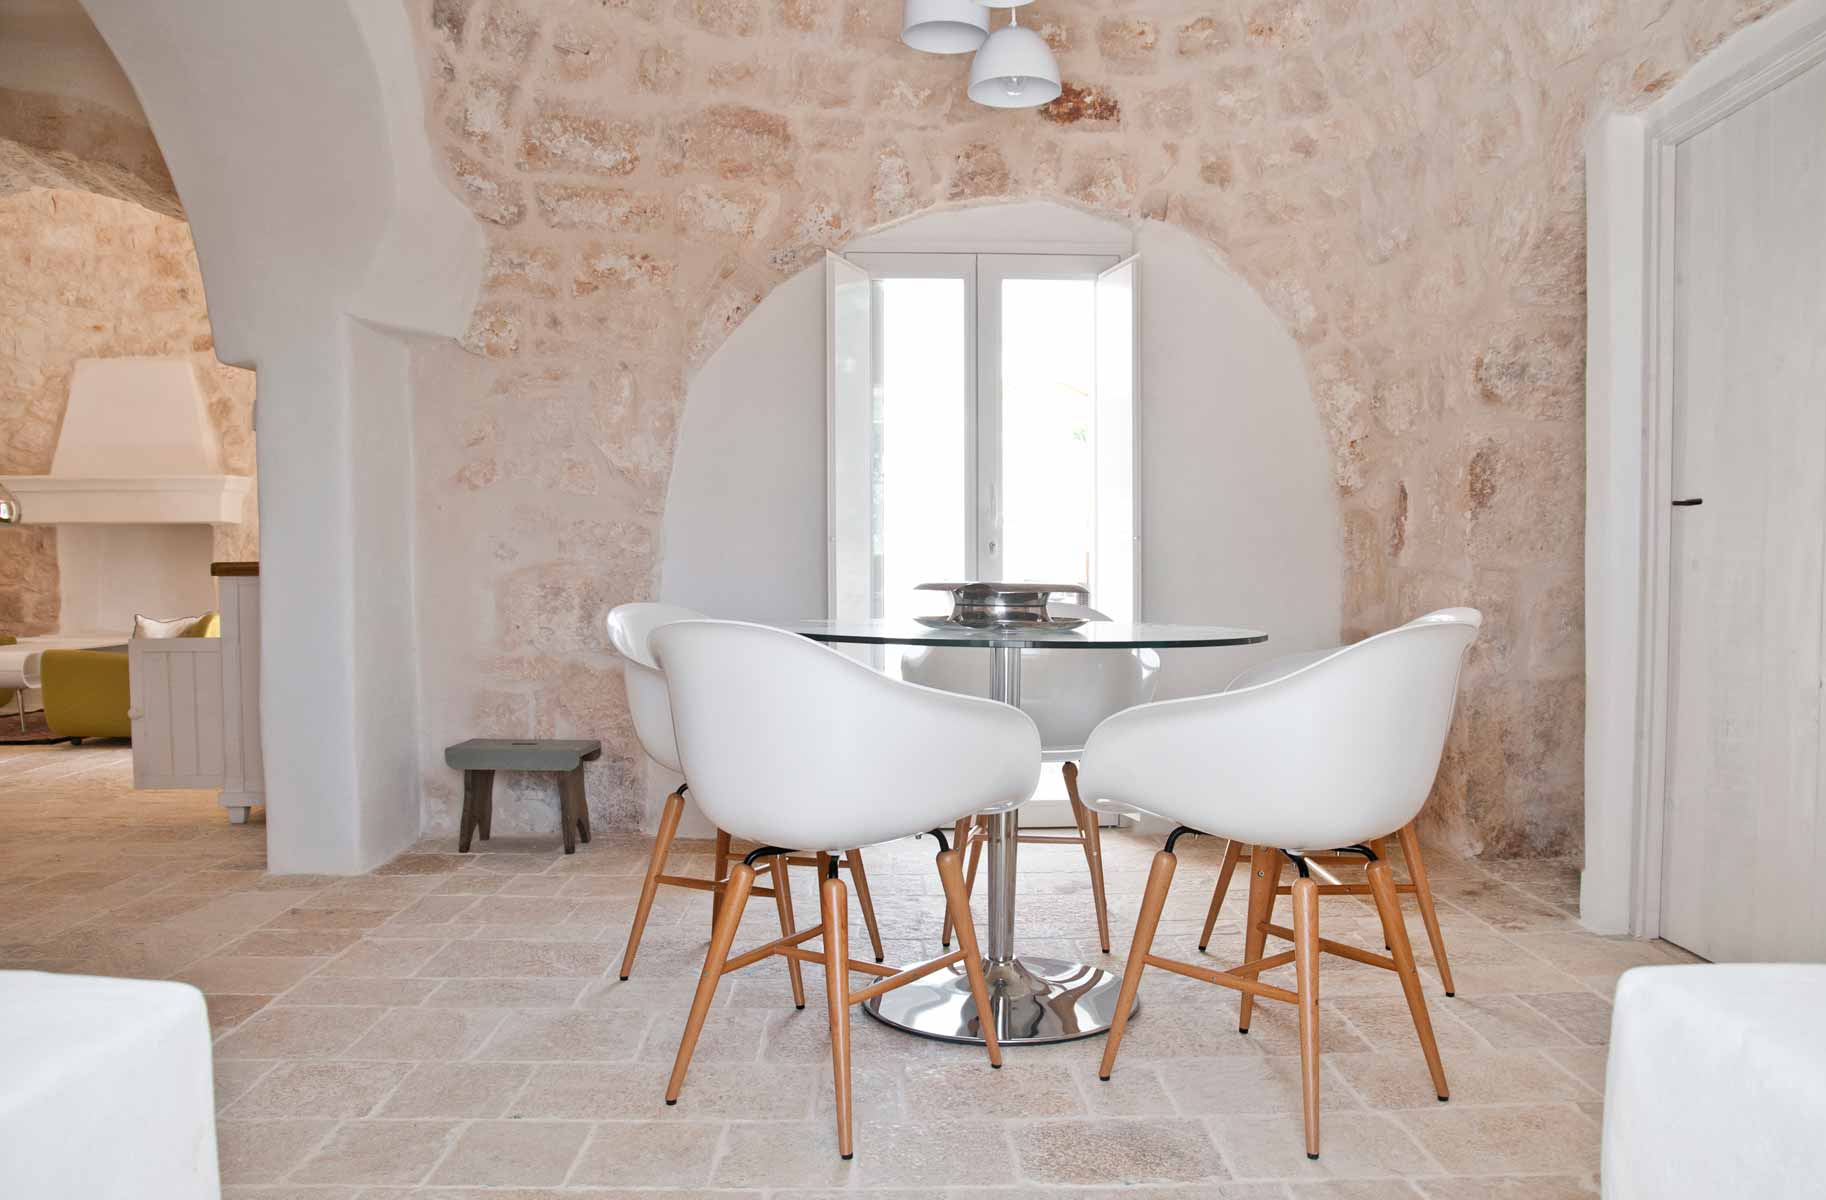 Contemporary trullo in Ostuni